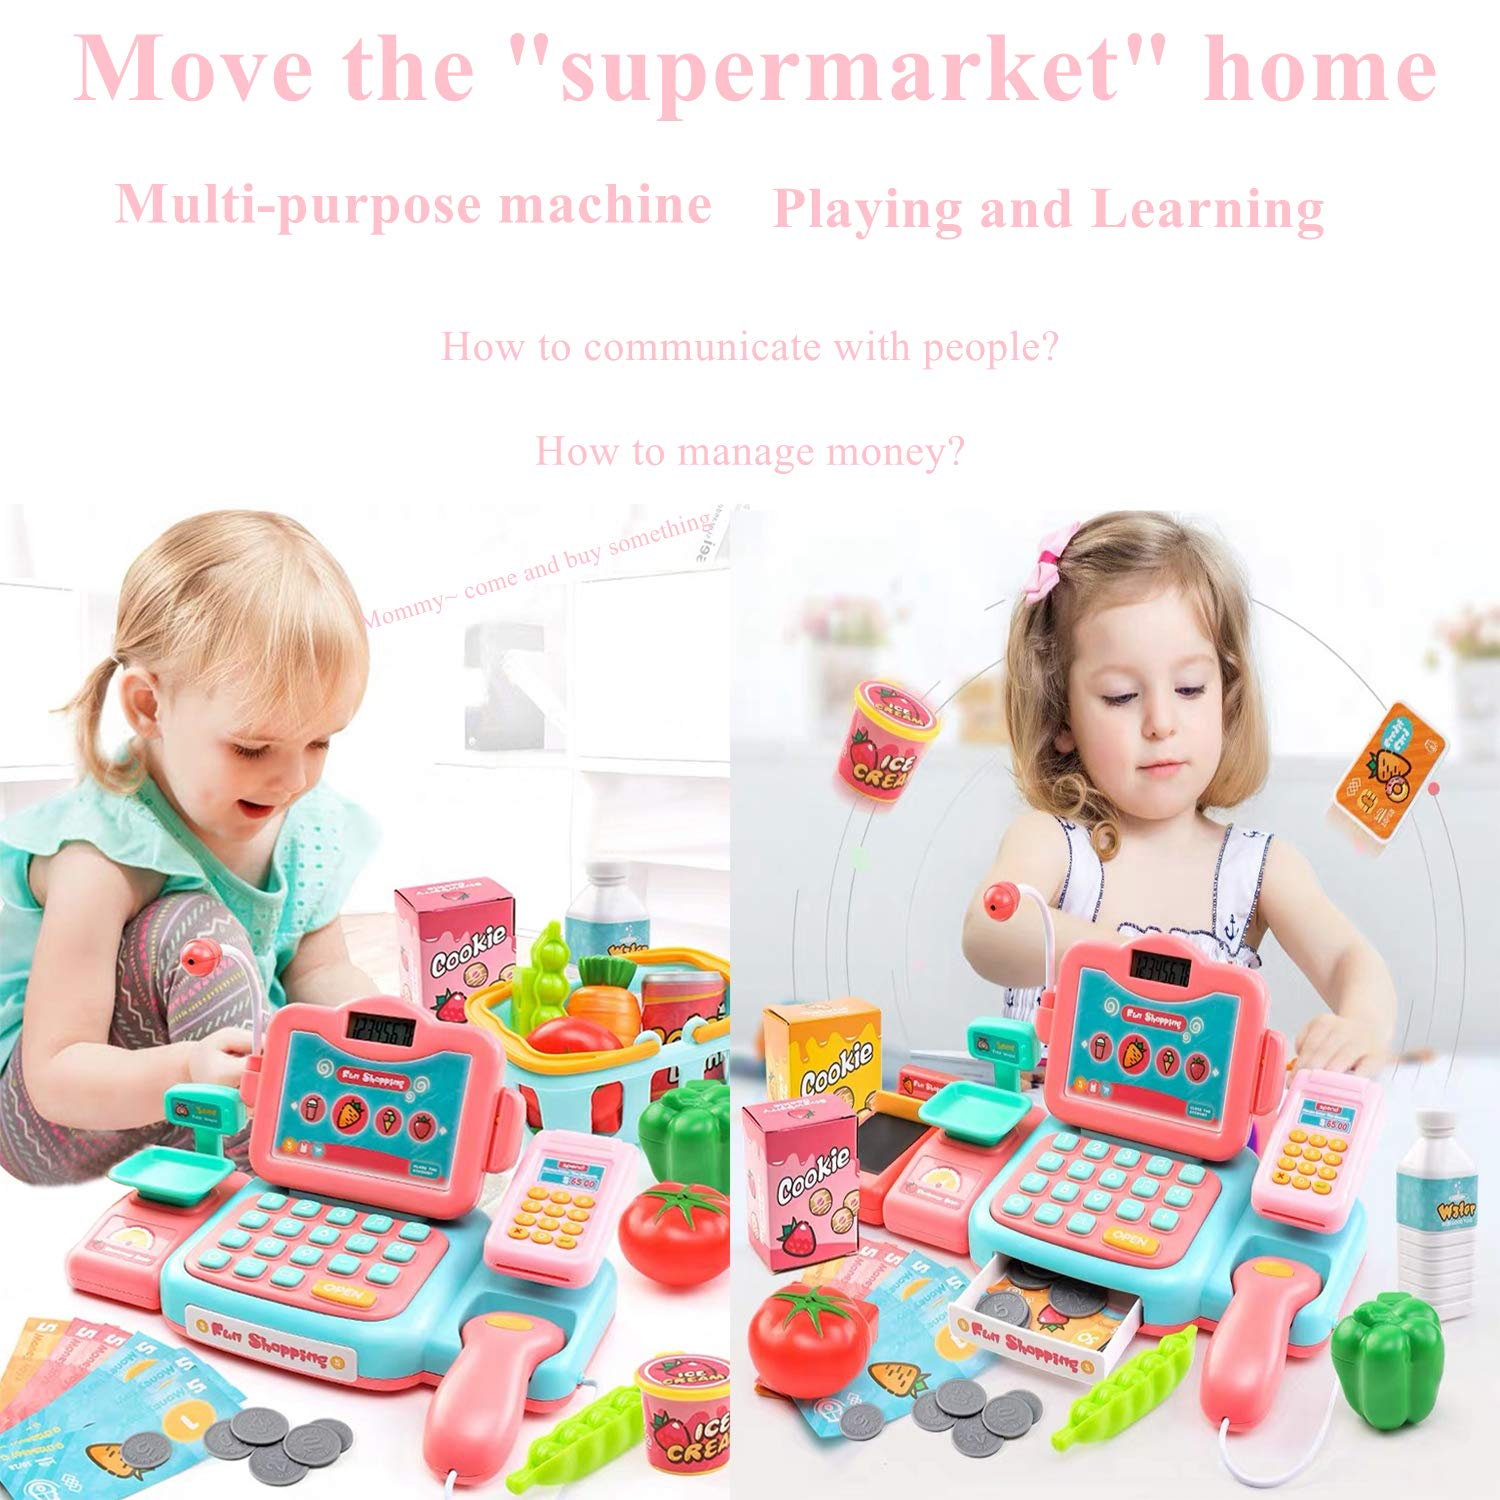 YYoomi Pretend Play Educational Cash Register Toy Classic Counting Toy with Microphone/ Calculator/ Scanner/ Sound/ Music for Kids & Toddlers & Preschoolers by YYoomi (Image #2)